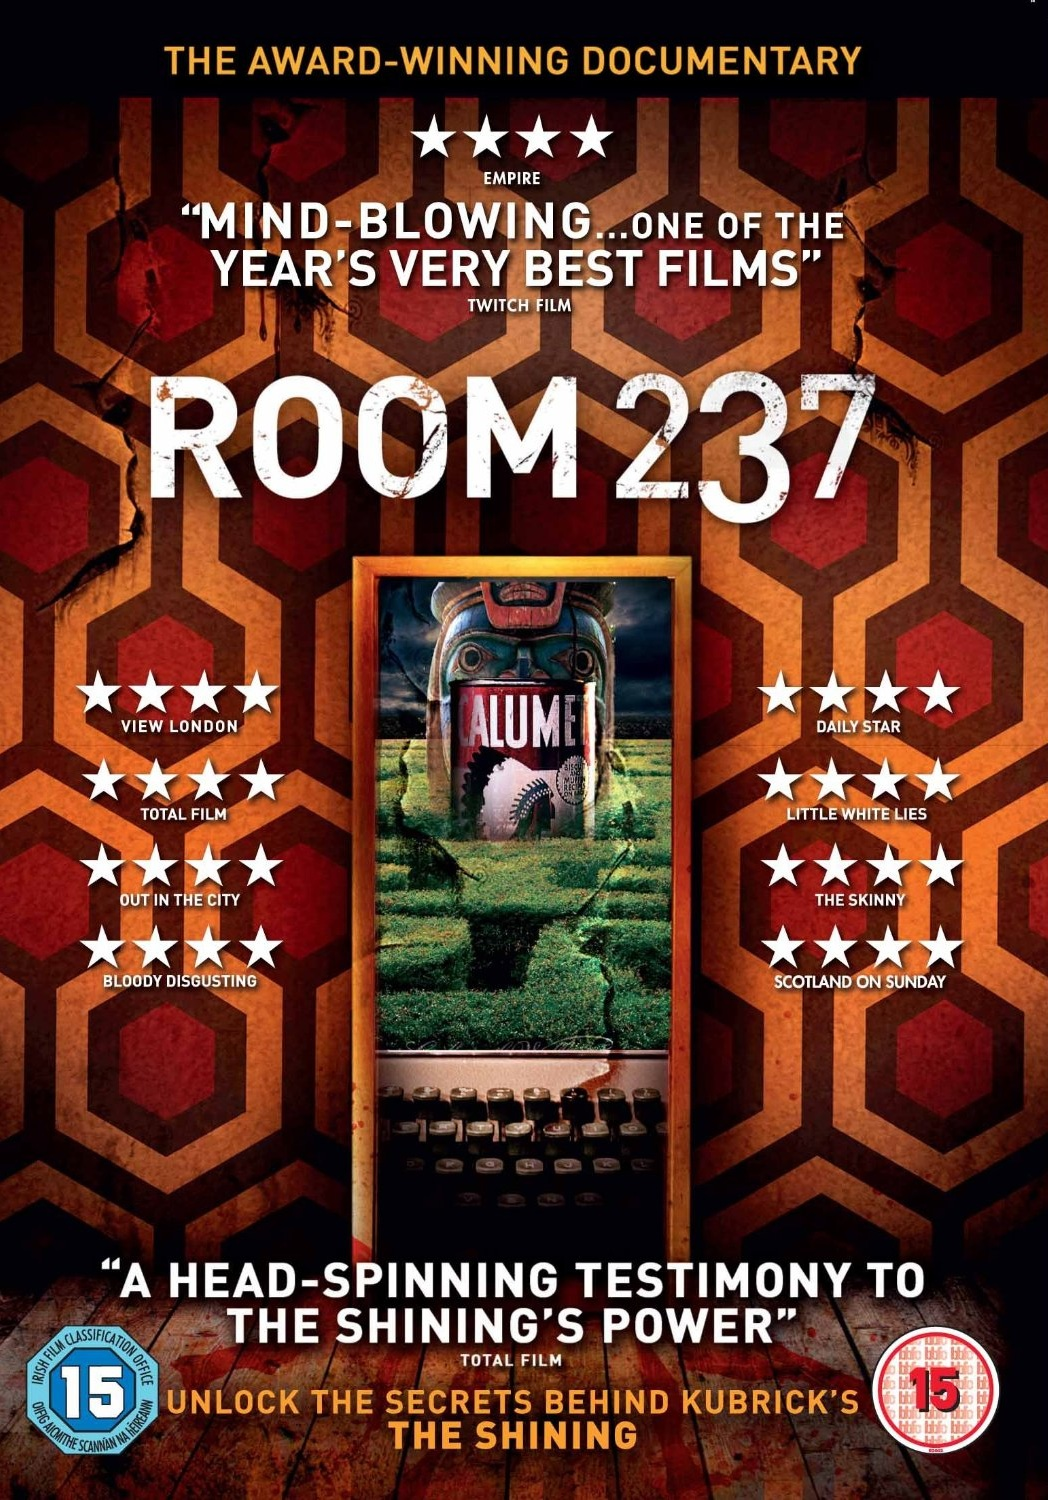 -room 237 dvd cover. ""